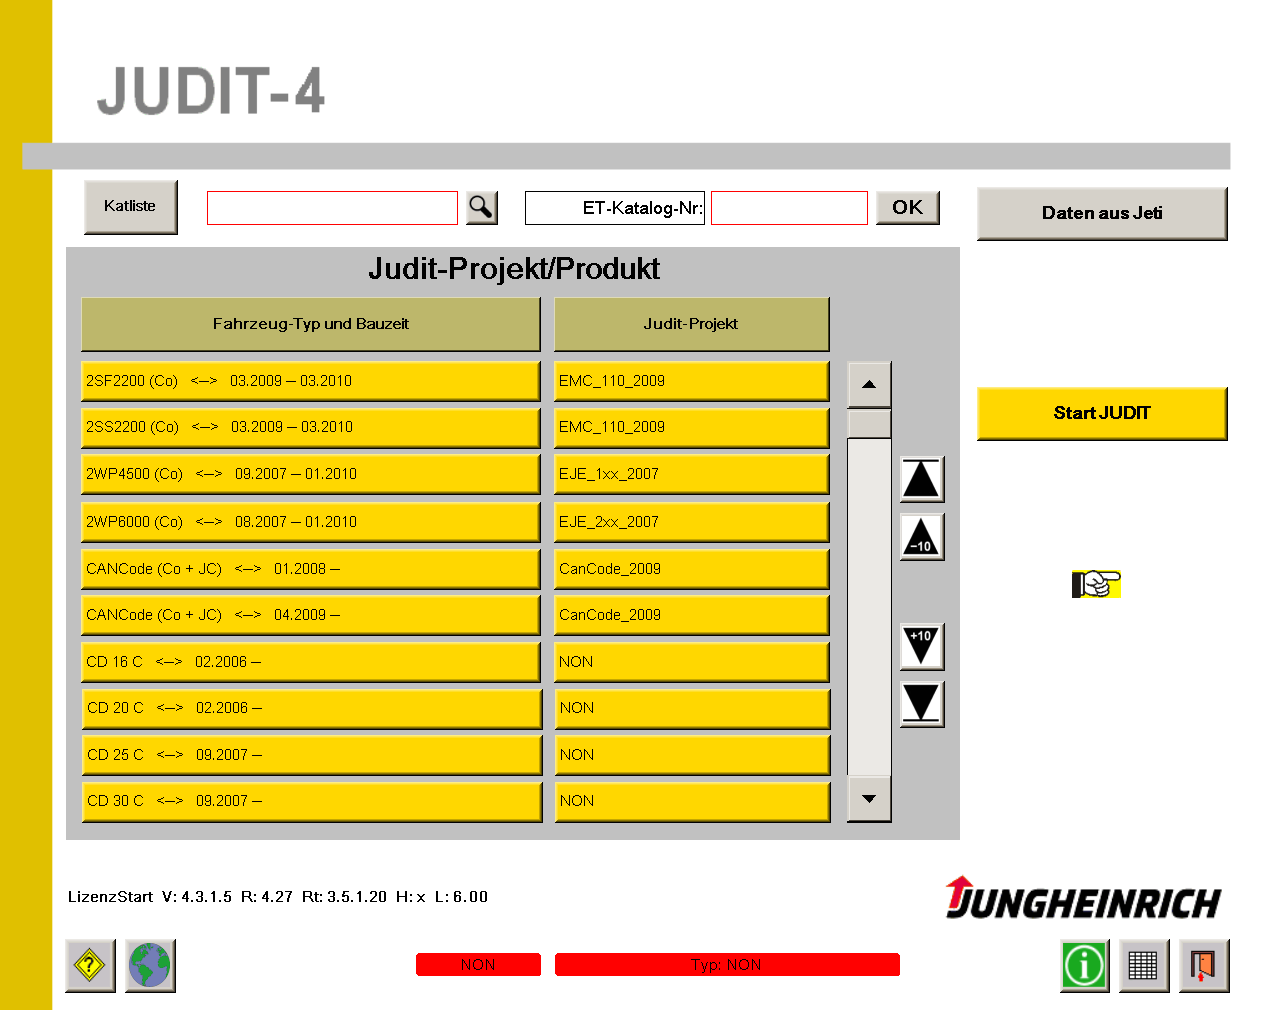 <b>Jungheinrich JUDIT-4 - Diagnostic software (v4.35)</b><br>JETI, Jungheinrich Judit4 diagnostic software